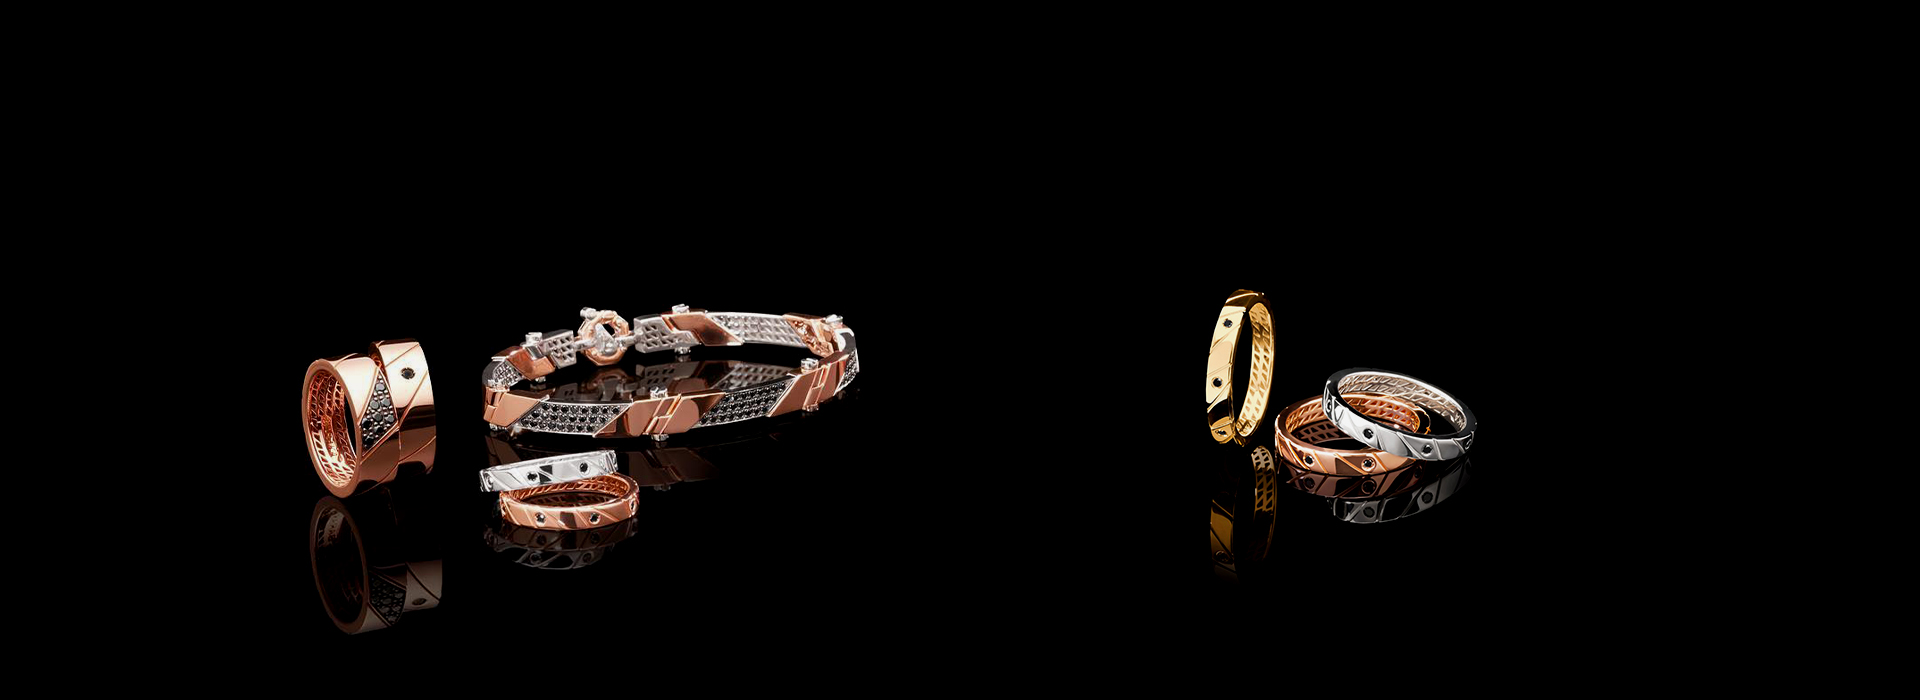 Baraka luxury men's jewelry